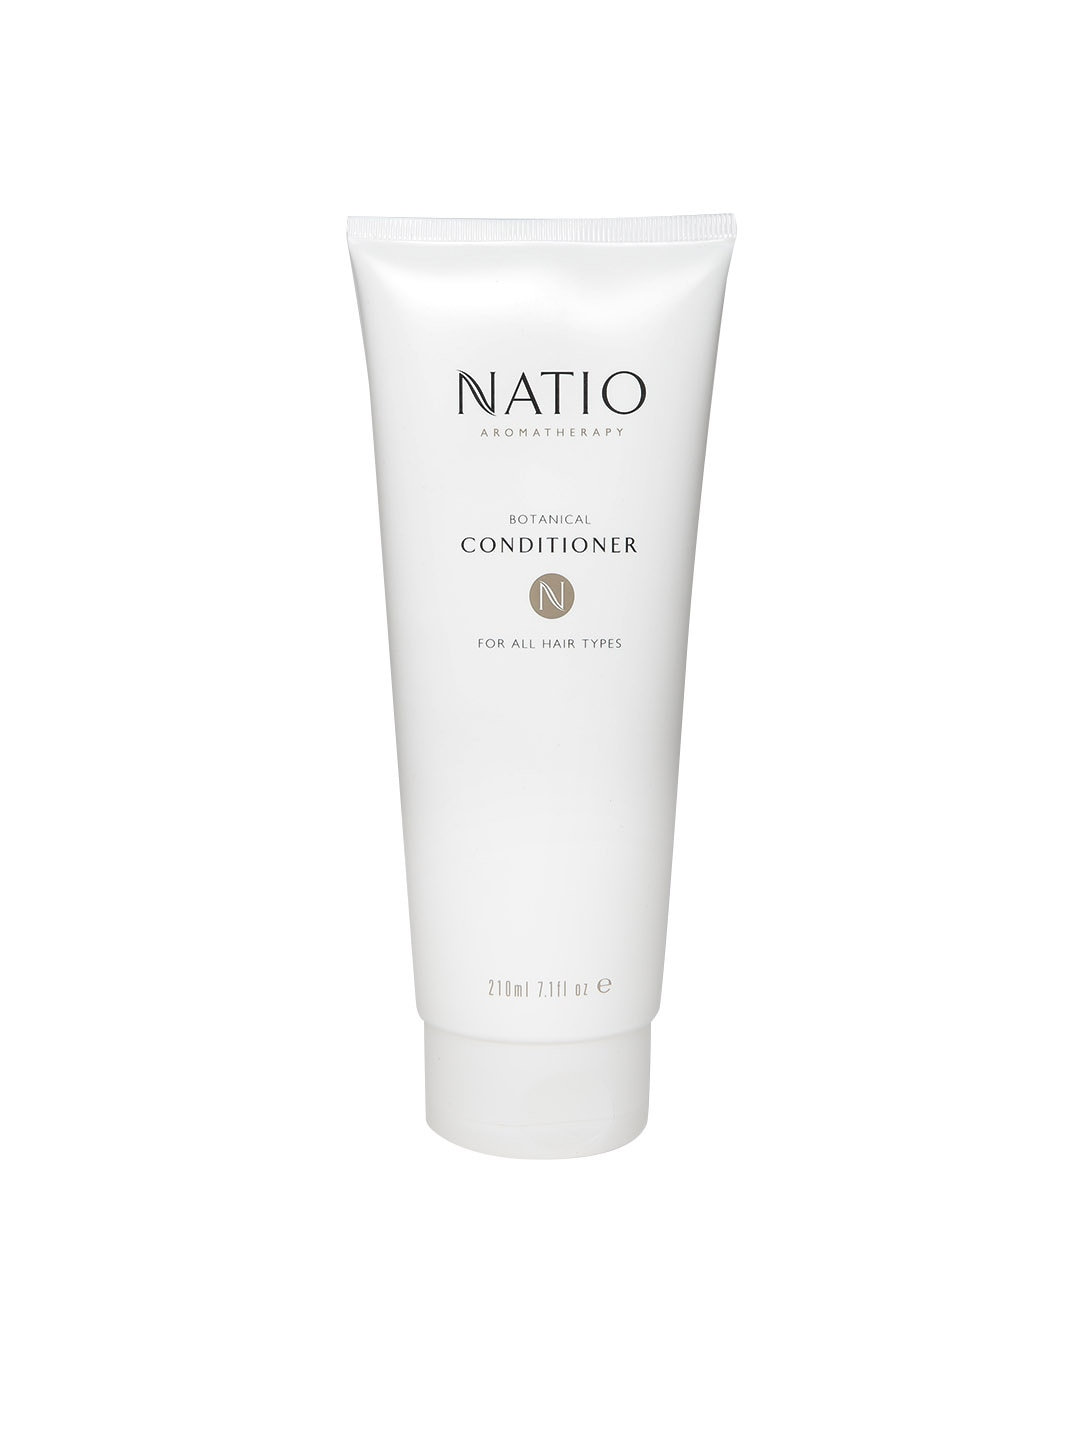 Natio Aromatherapy Botanical Conditioner image